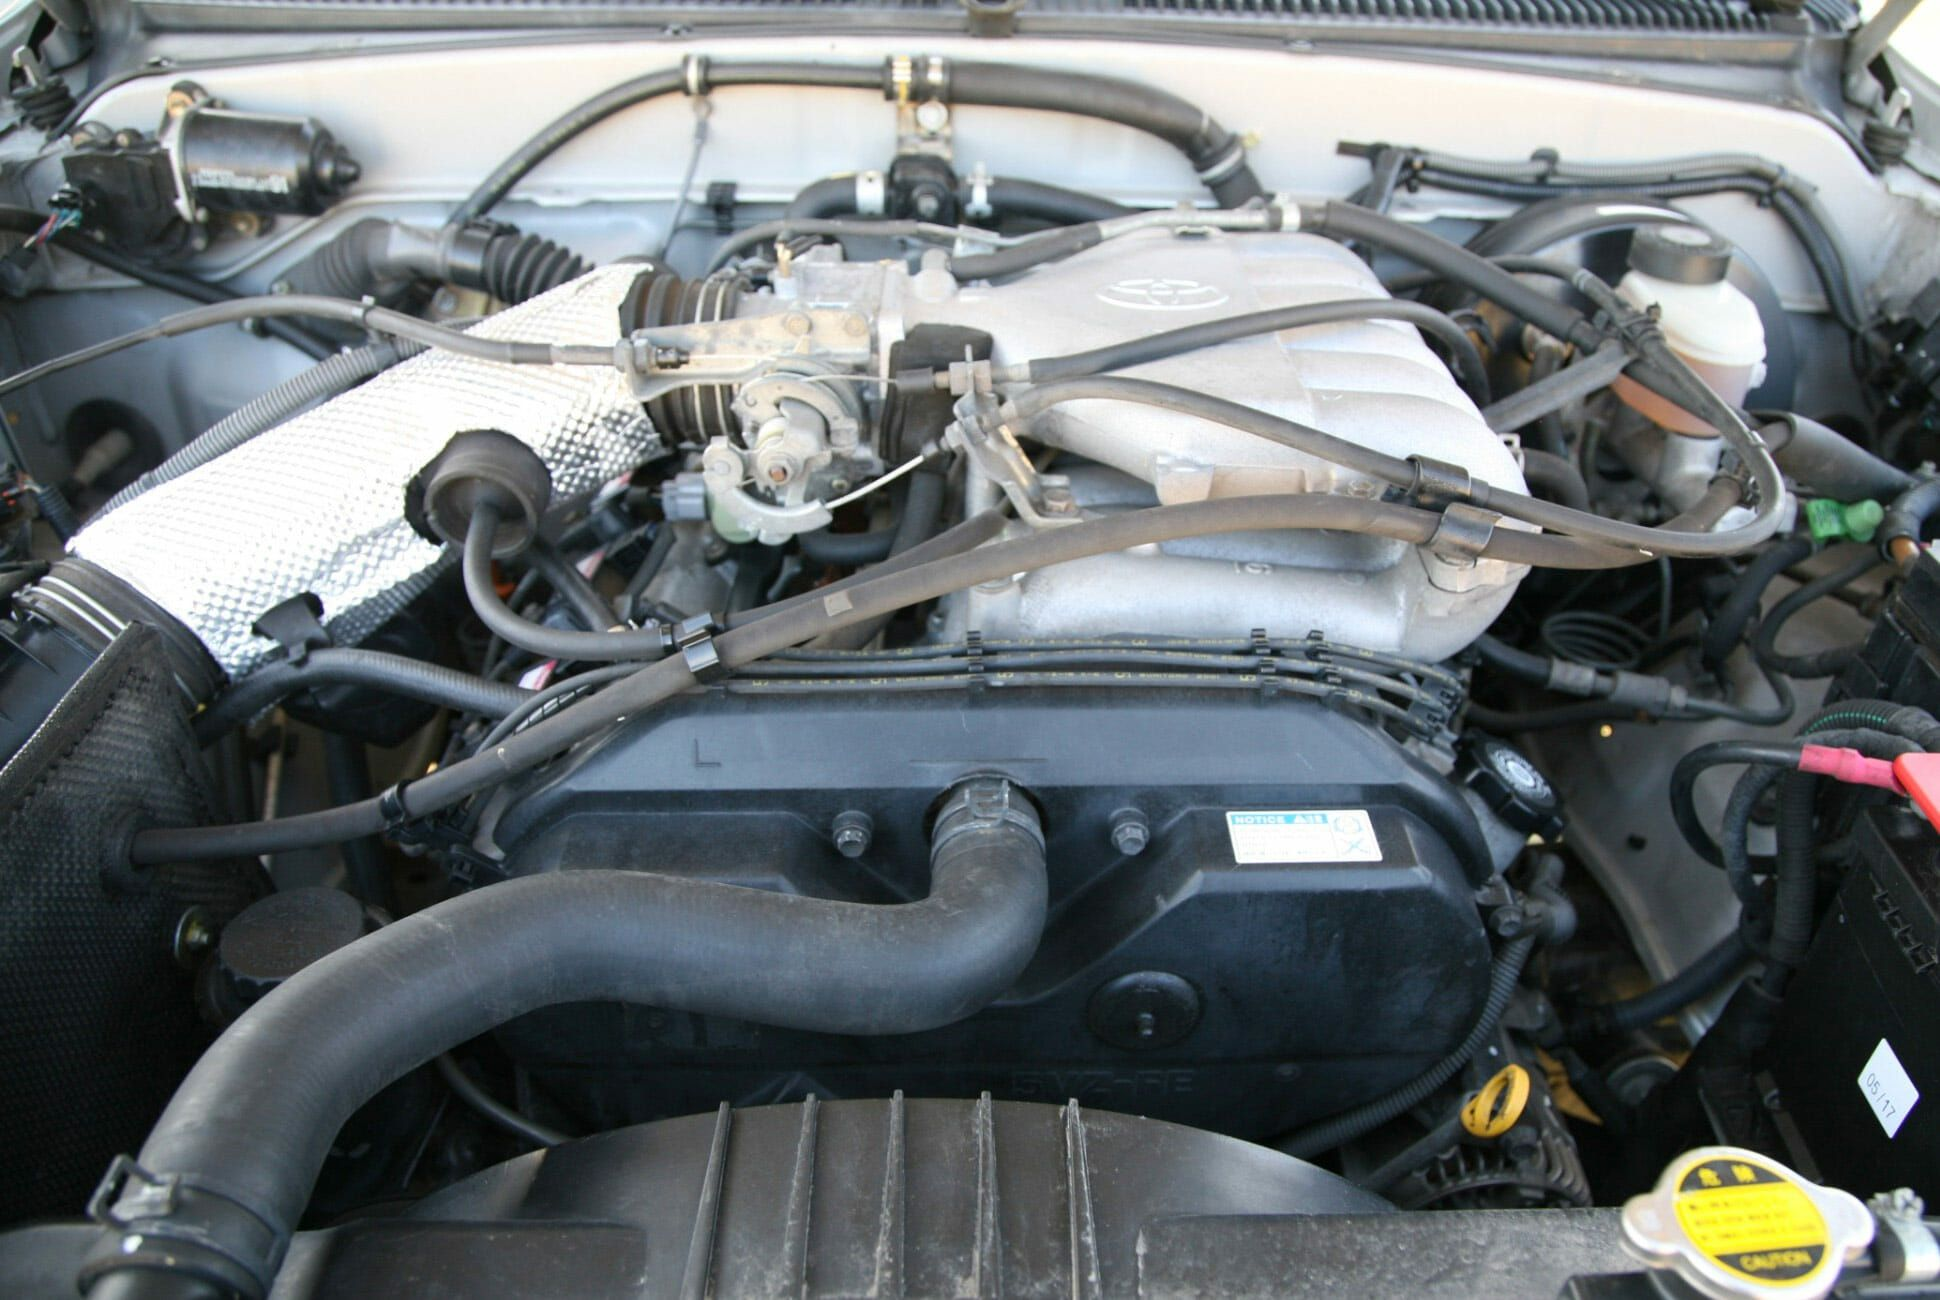 Found-2002-Toyota-Tacoma-TRD-Limited-Double-Cab-slide-8